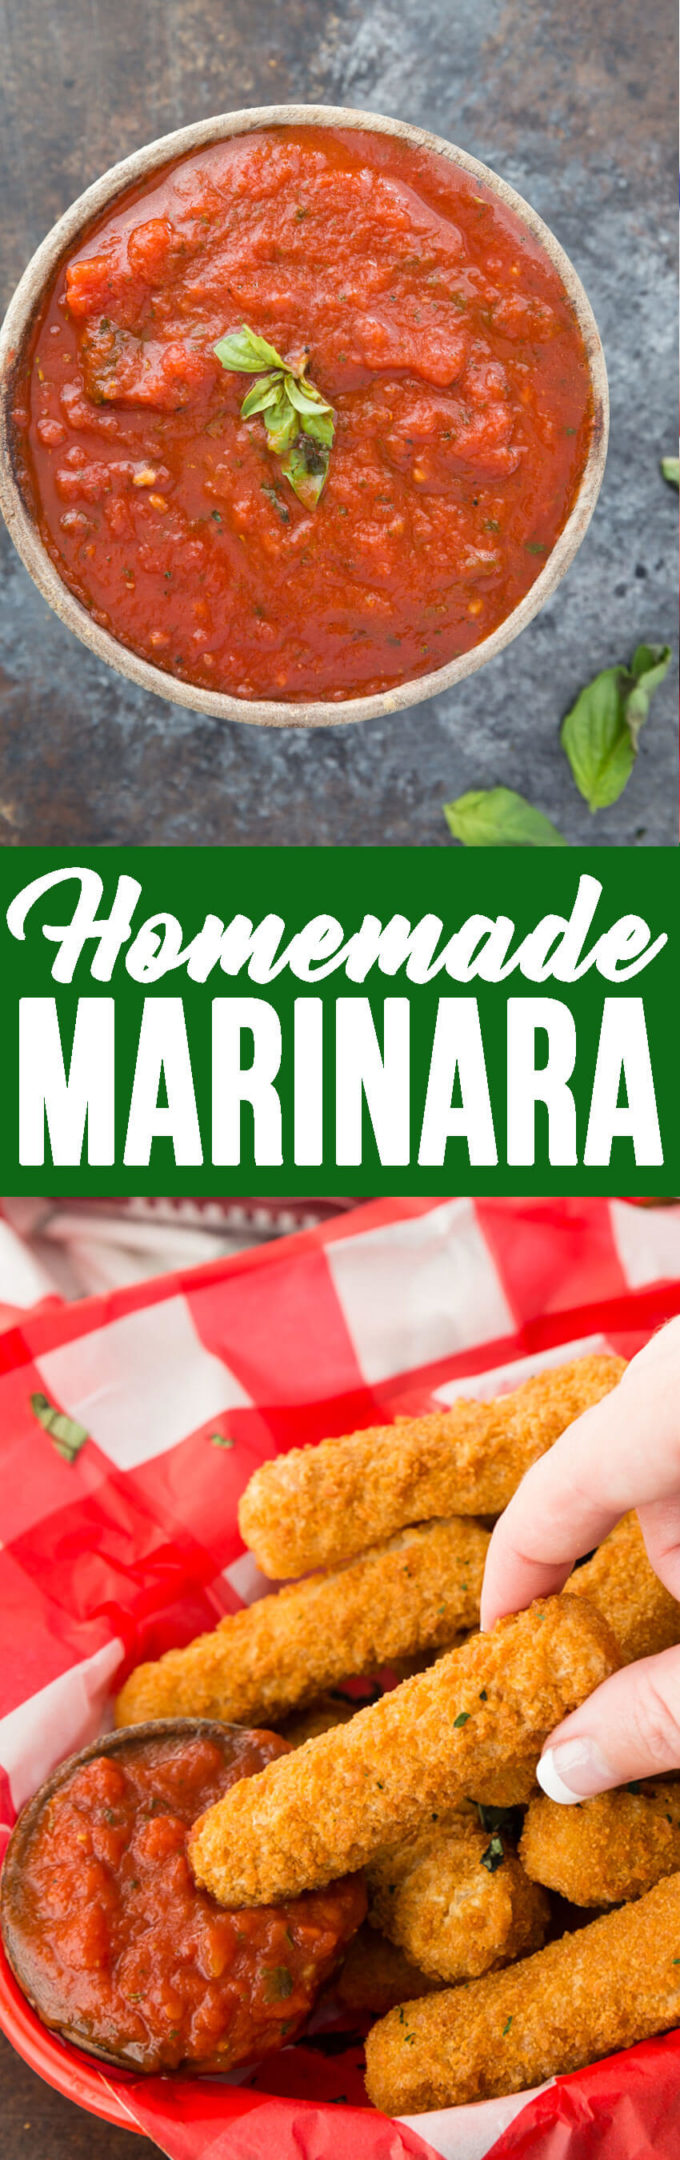 Homemade marinara dipping sauce